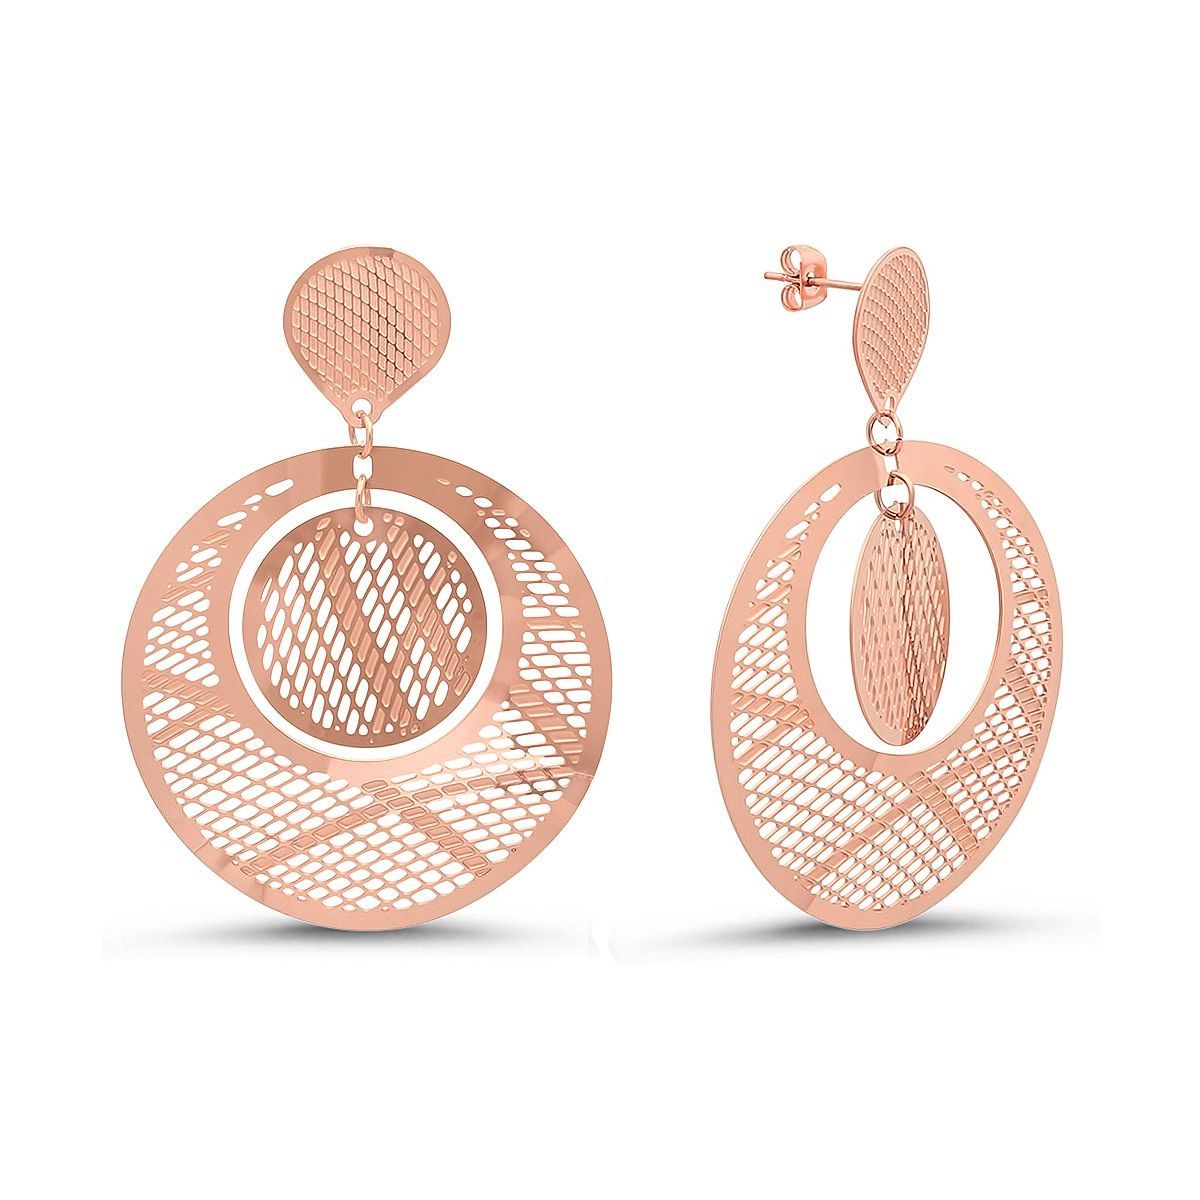 18k Rose Goldplated Circular Filigree Drop Earrings (Rosetone), Women's, Size: Medium, Pink